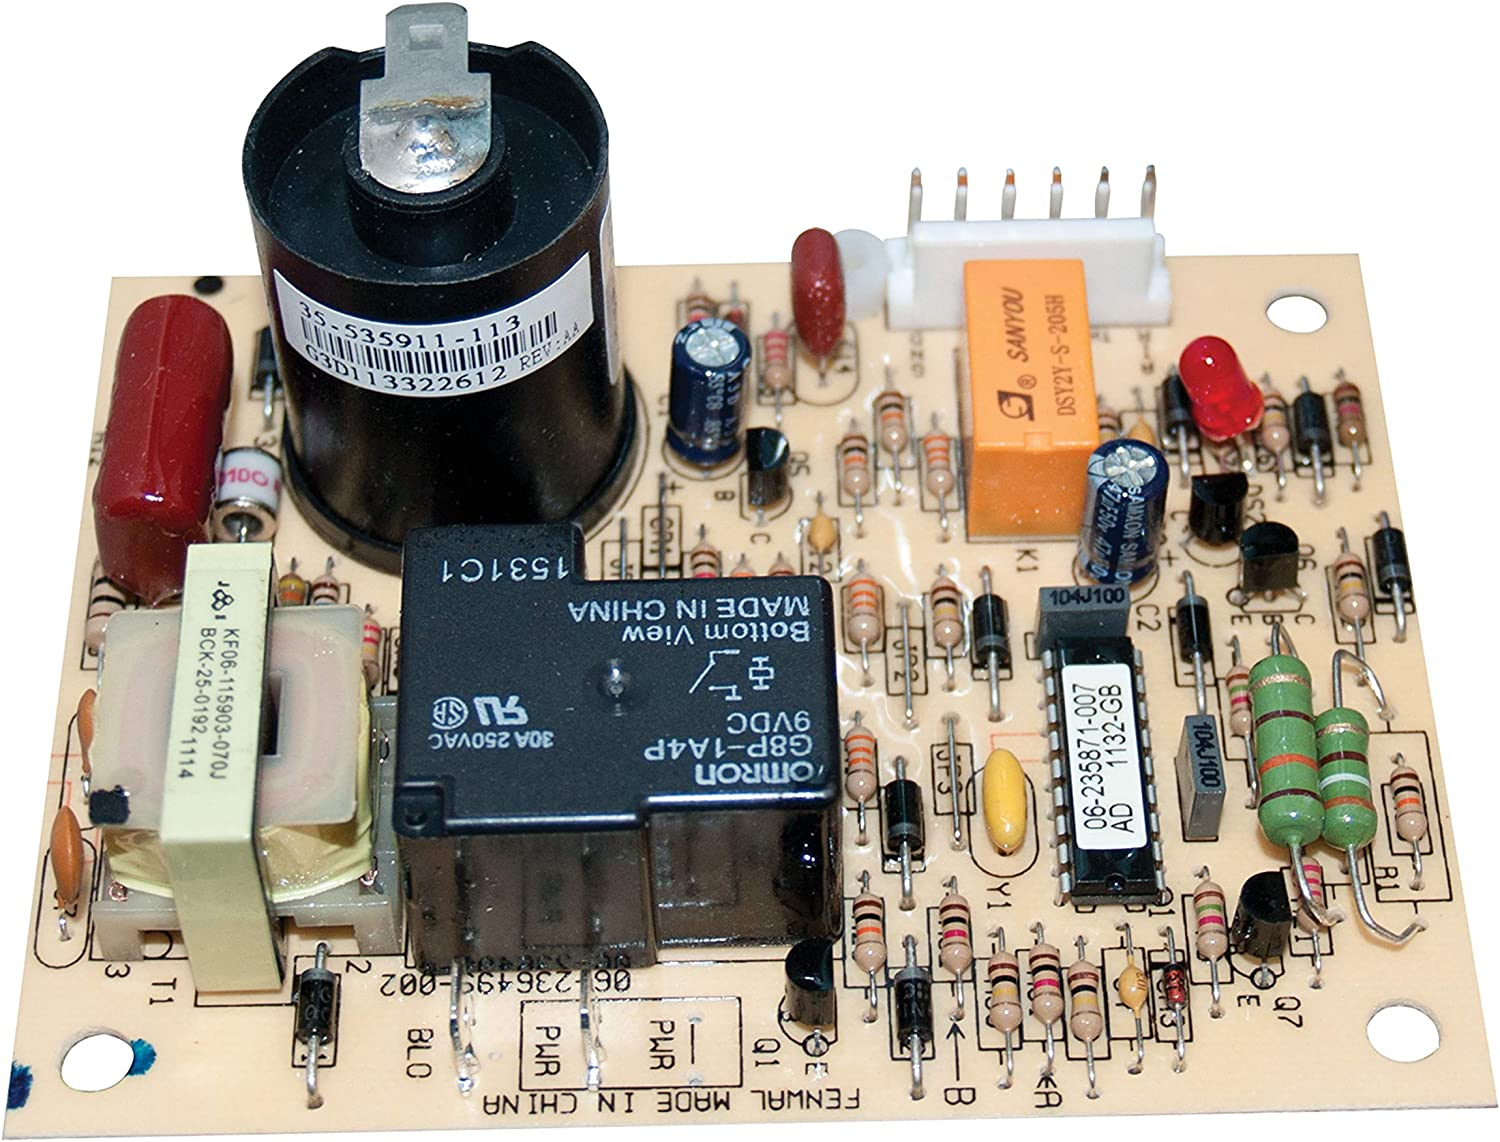 Dometic 31501 Hydro Flame Corp Ignition Control Board